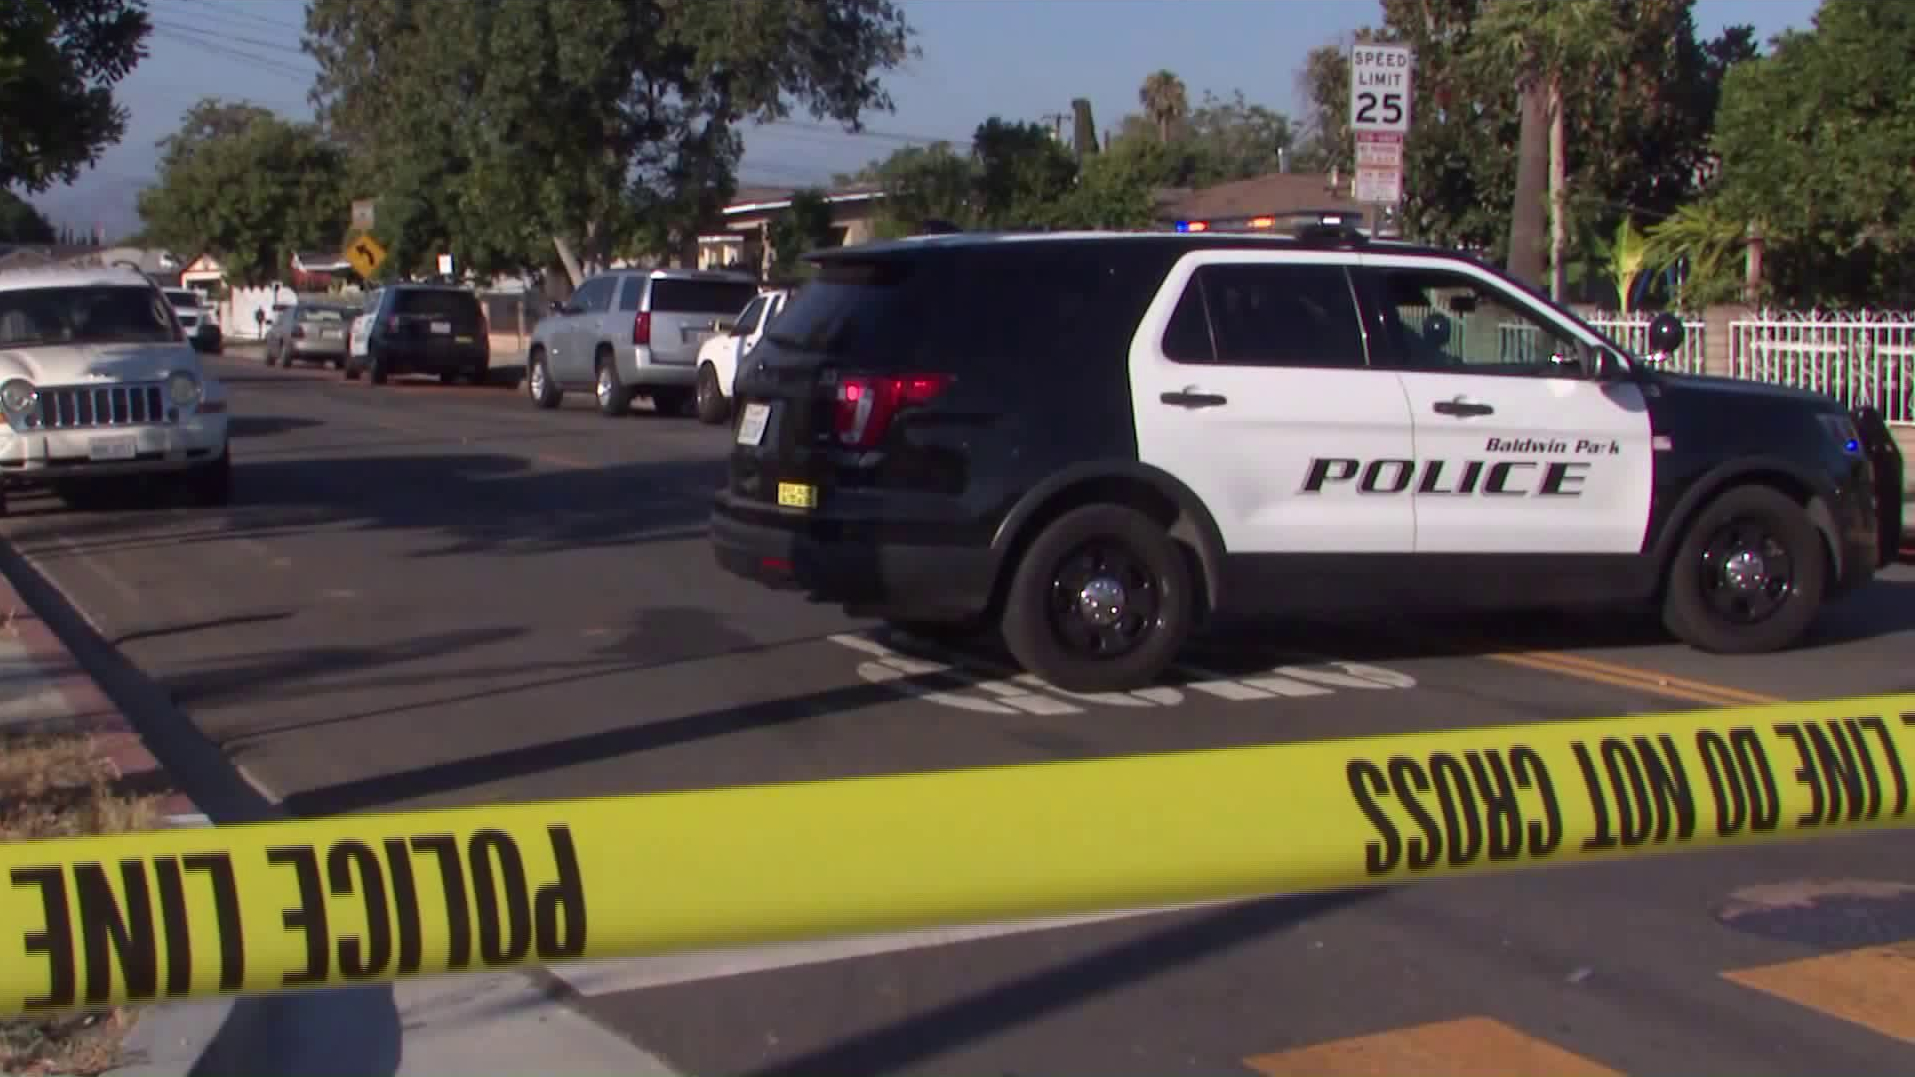 Authorities respond to investigate a double homicide in Baldwin Park on July 23, 2020. (KTLA)